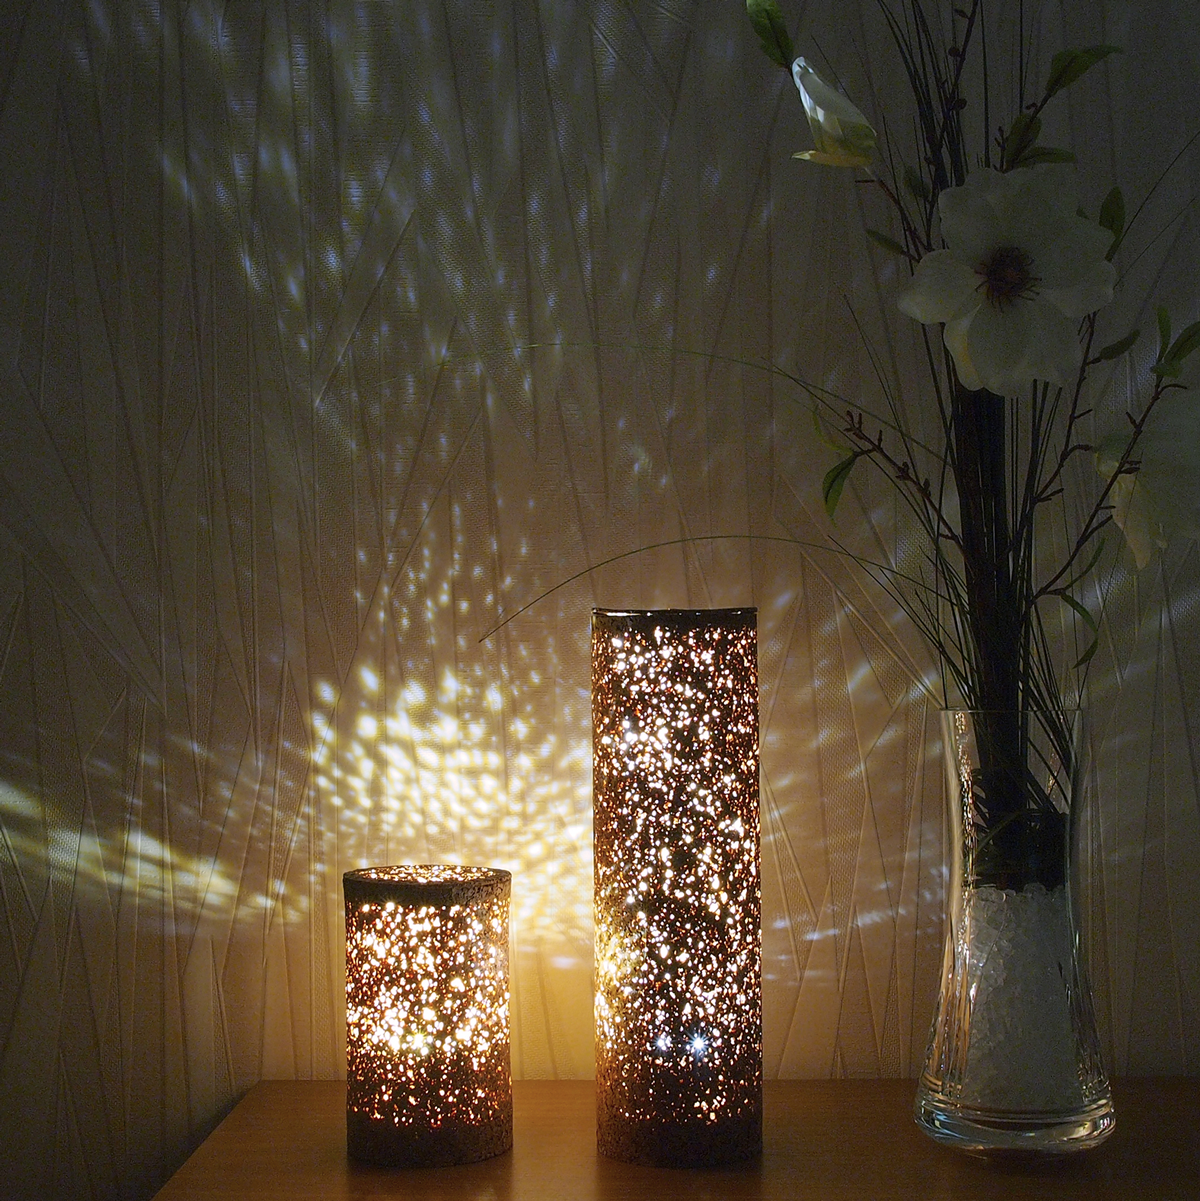 Flower_lamp_lightning2. Flower_lamp_lightning4. Flower_lamp_lightning5.  Flower_lamp_lightning6. Home / Lightning / Flower Lamp Small